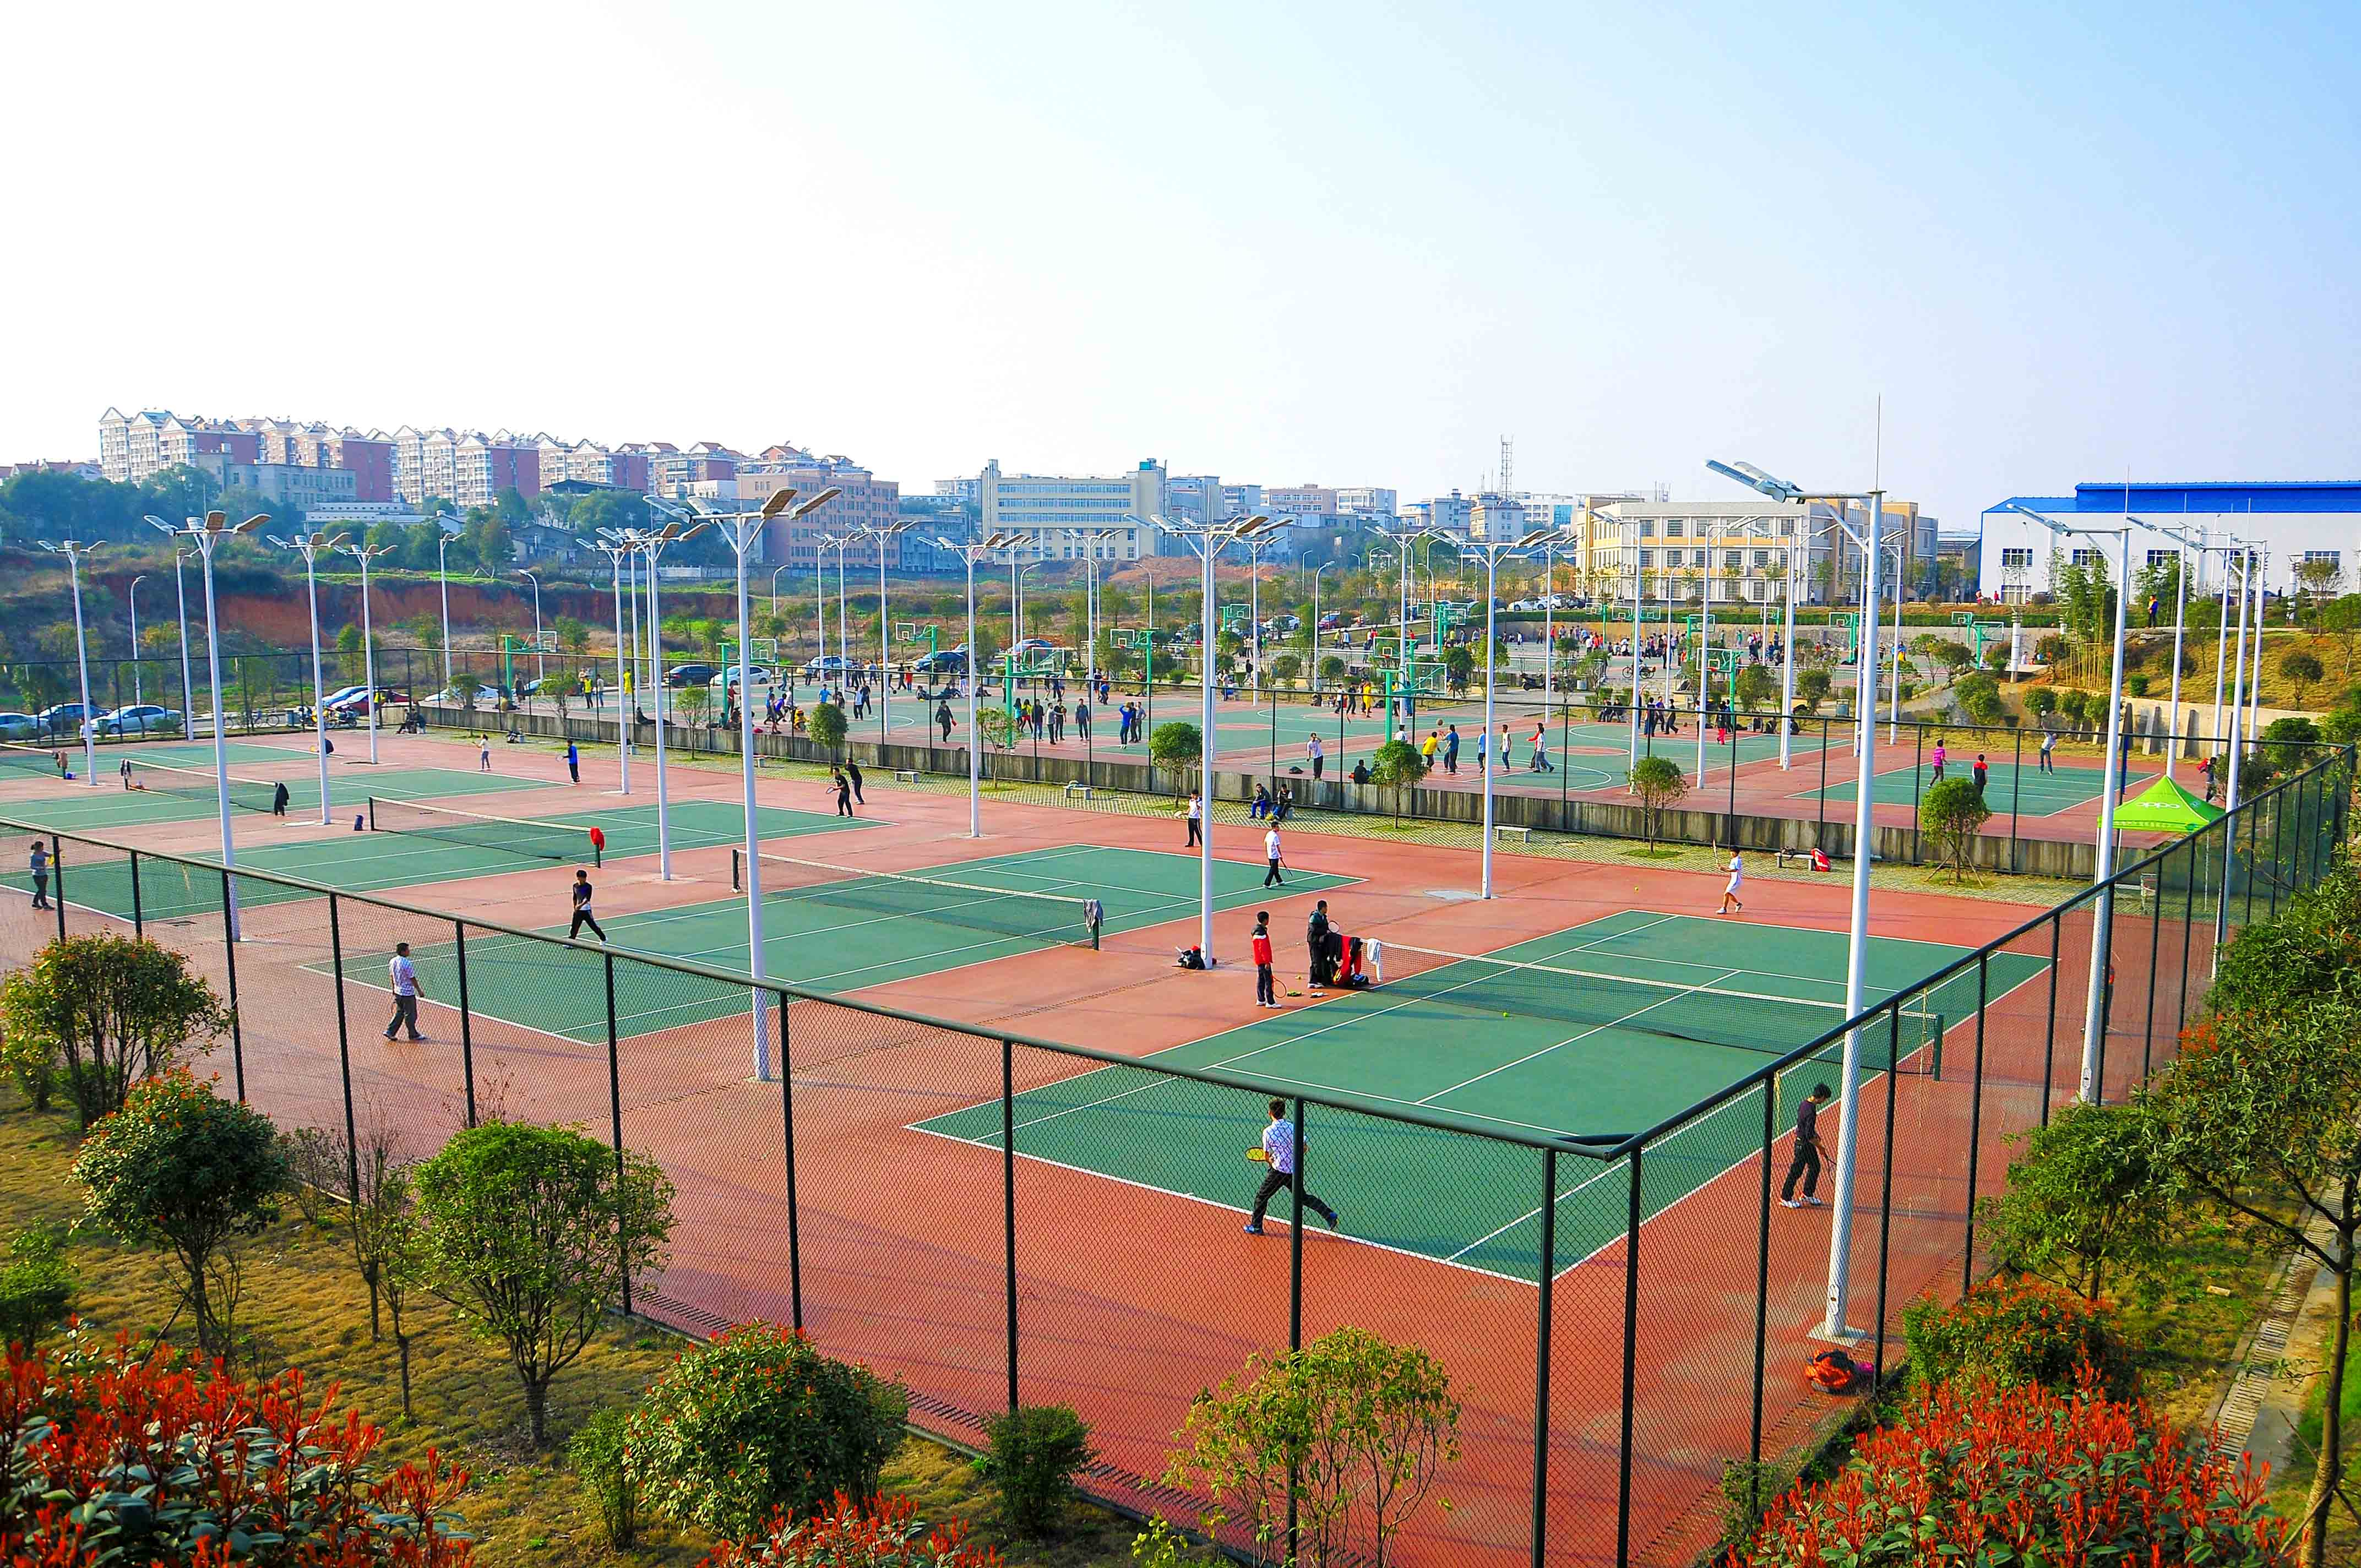 Hunan-University-of-Science-and-Technology-track-and-field-ground